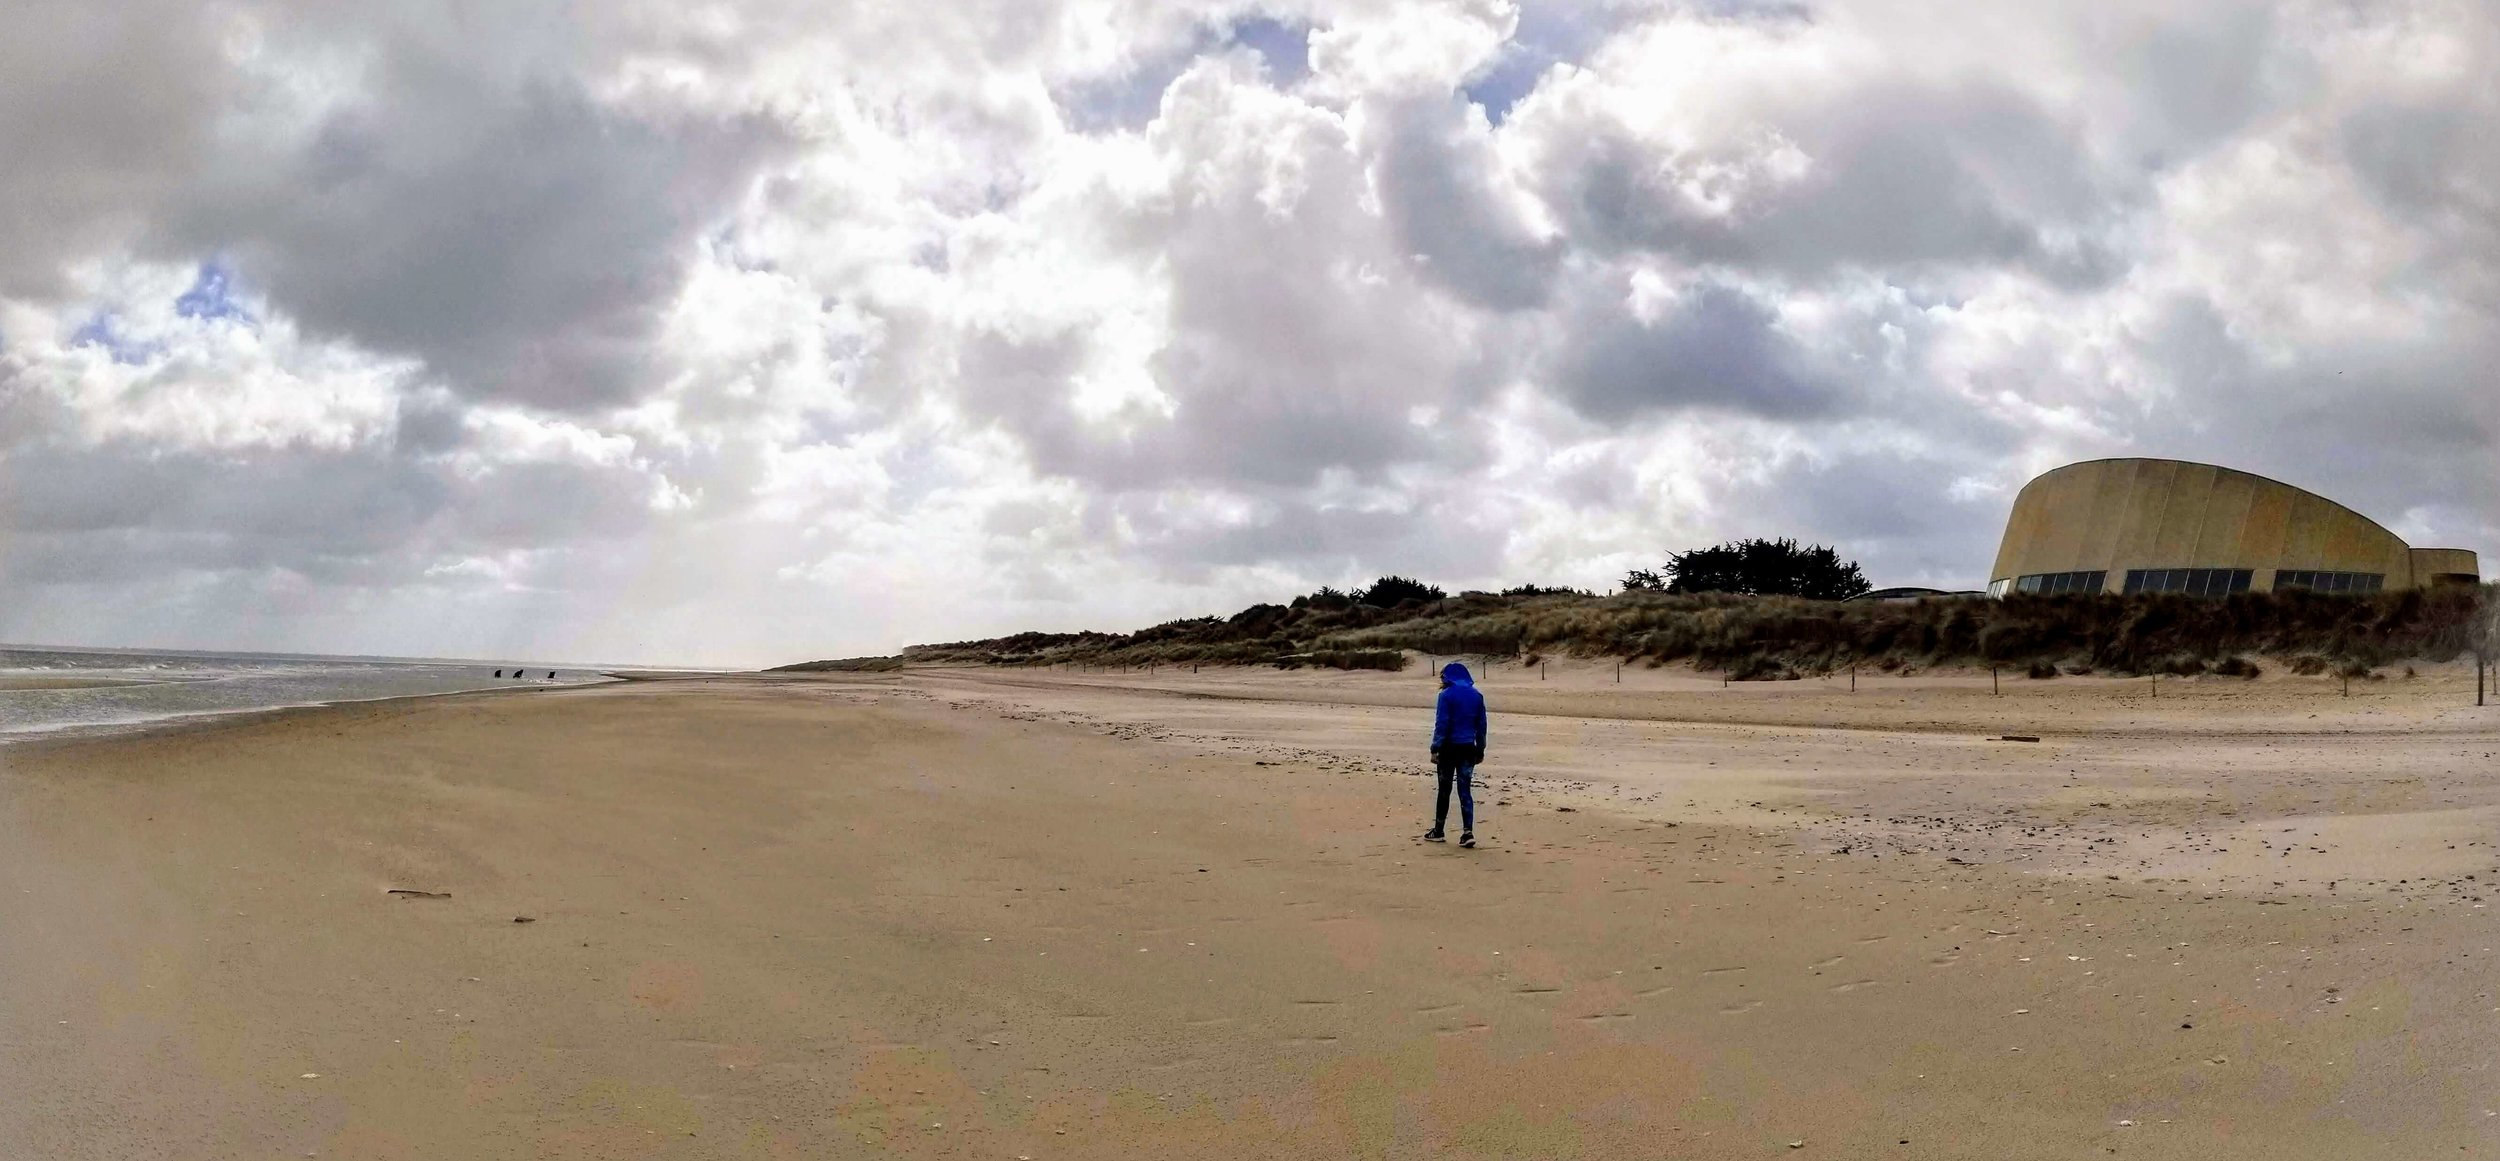 Utah Beach on a March day. Deserted and beautiful.